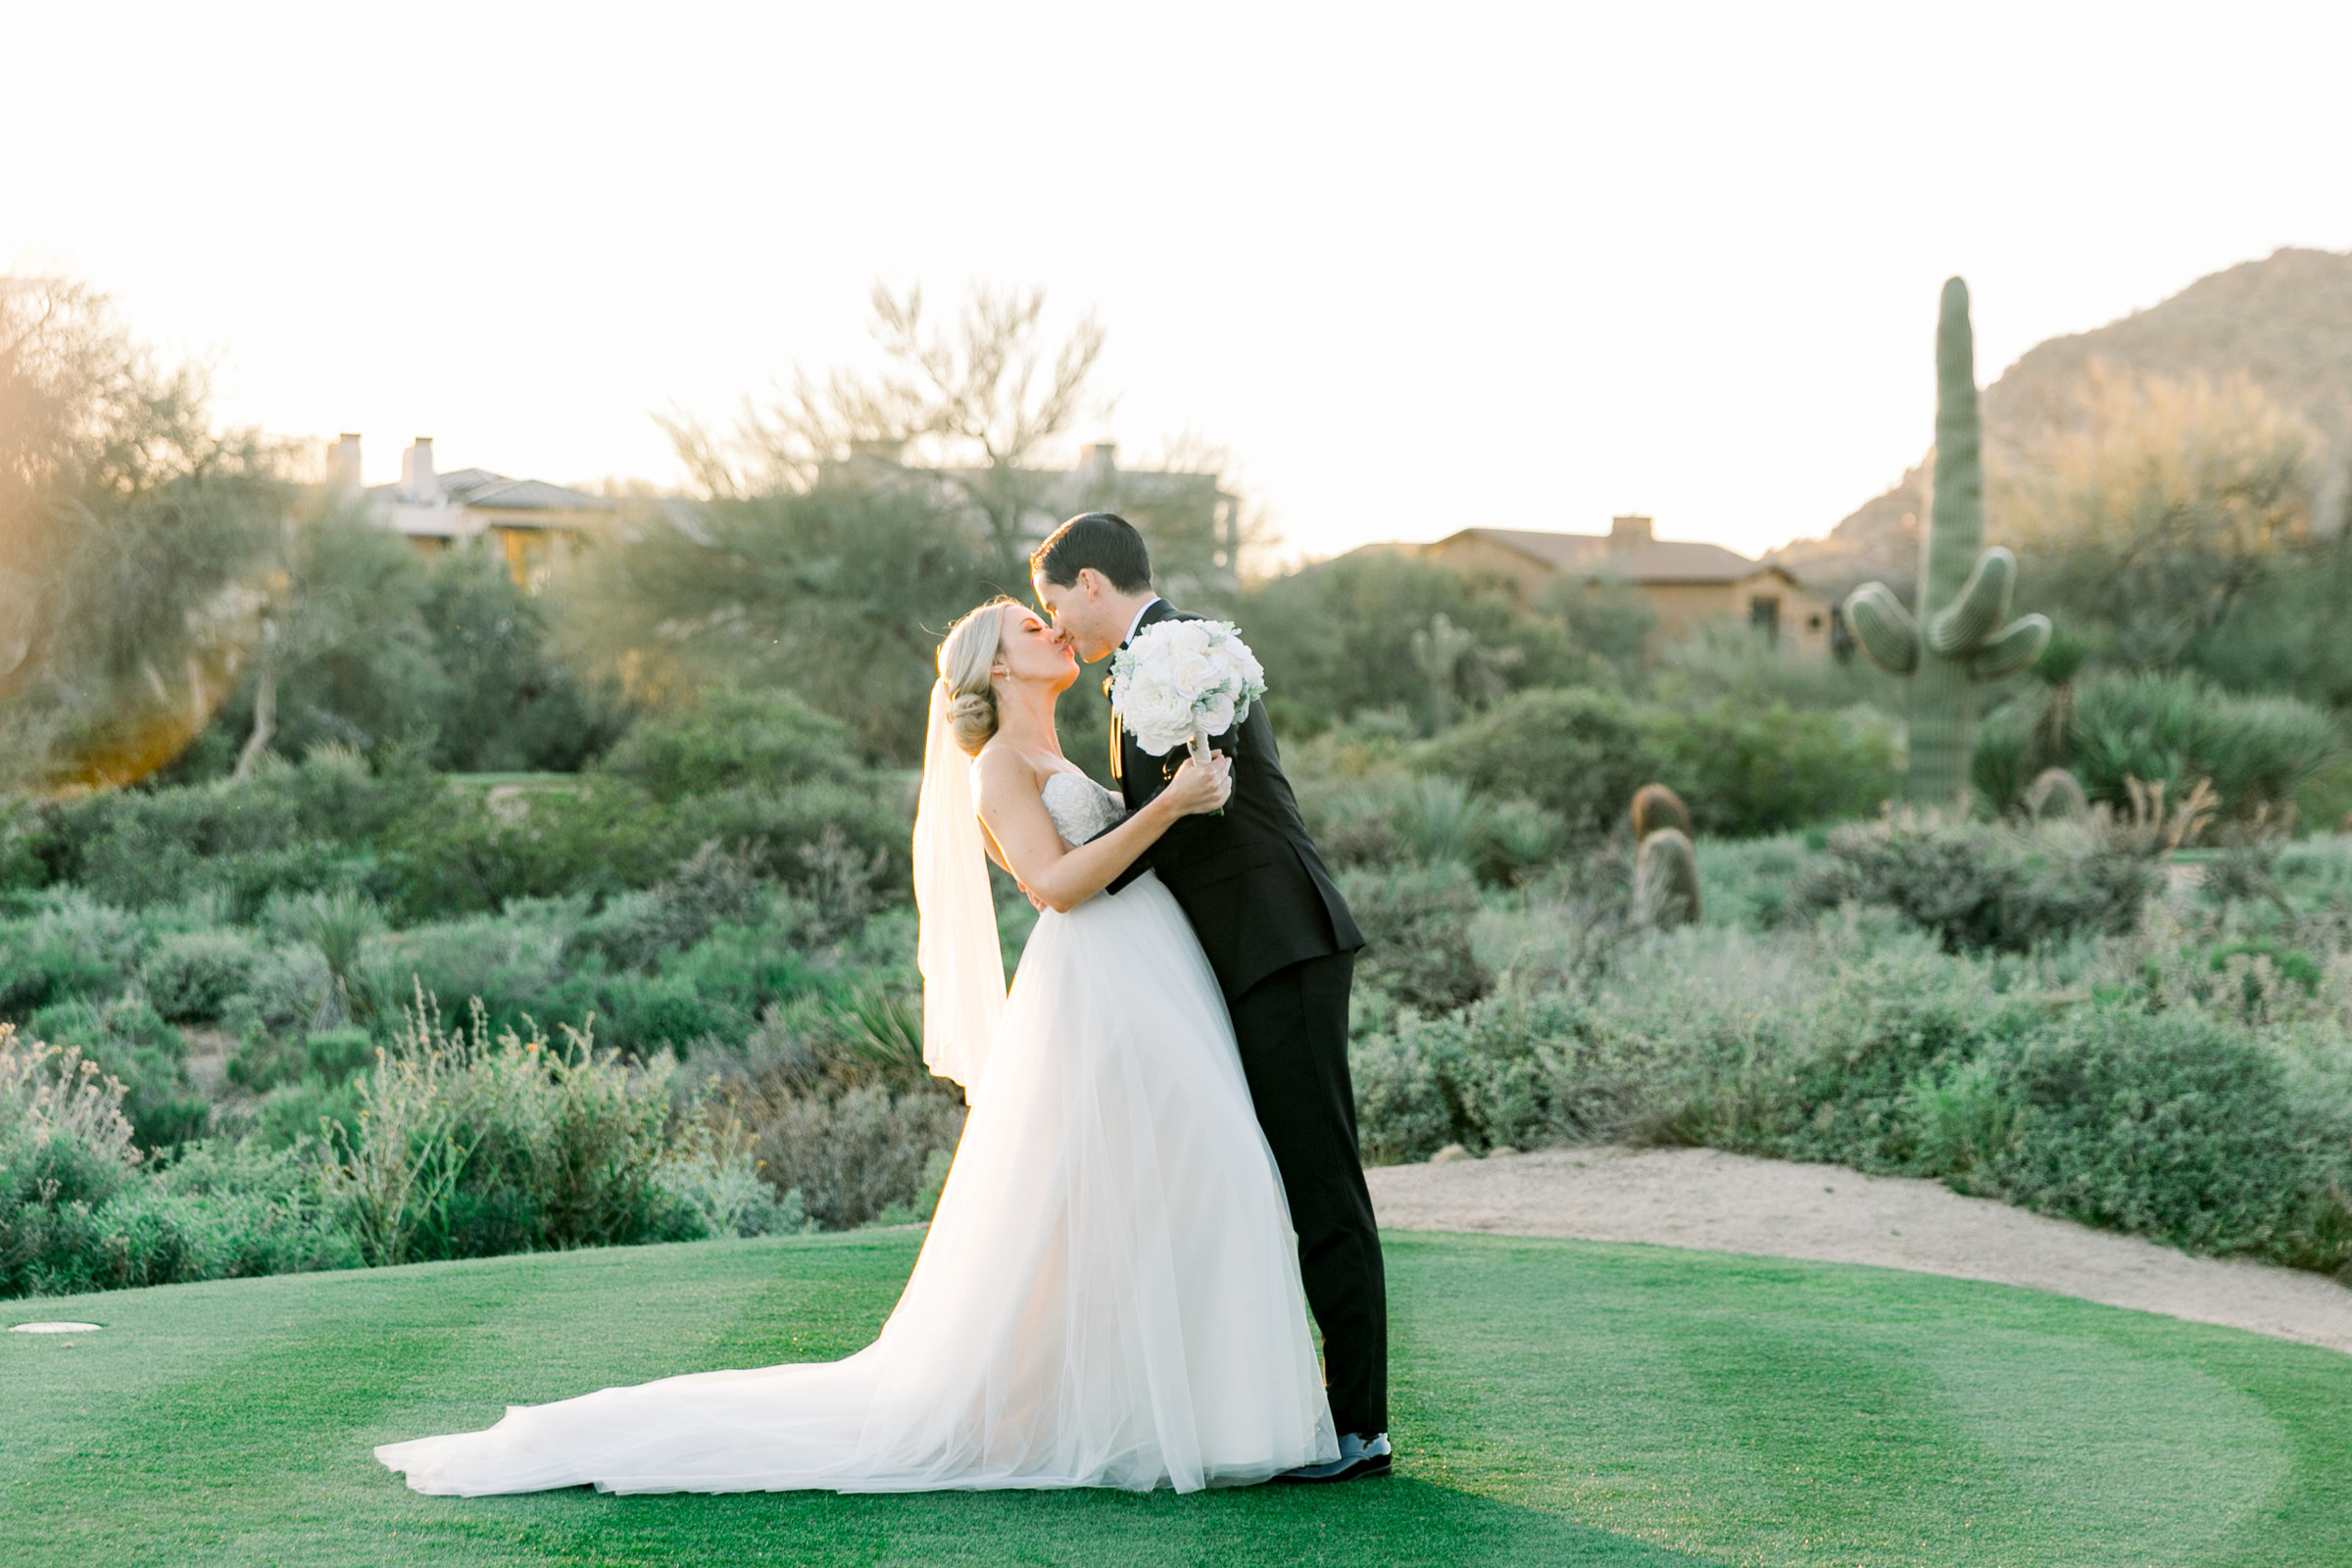 Karlie Colleen Photography - Arizona Wedding at The Troon Scottsdale Country Club - Paige & Shane -698